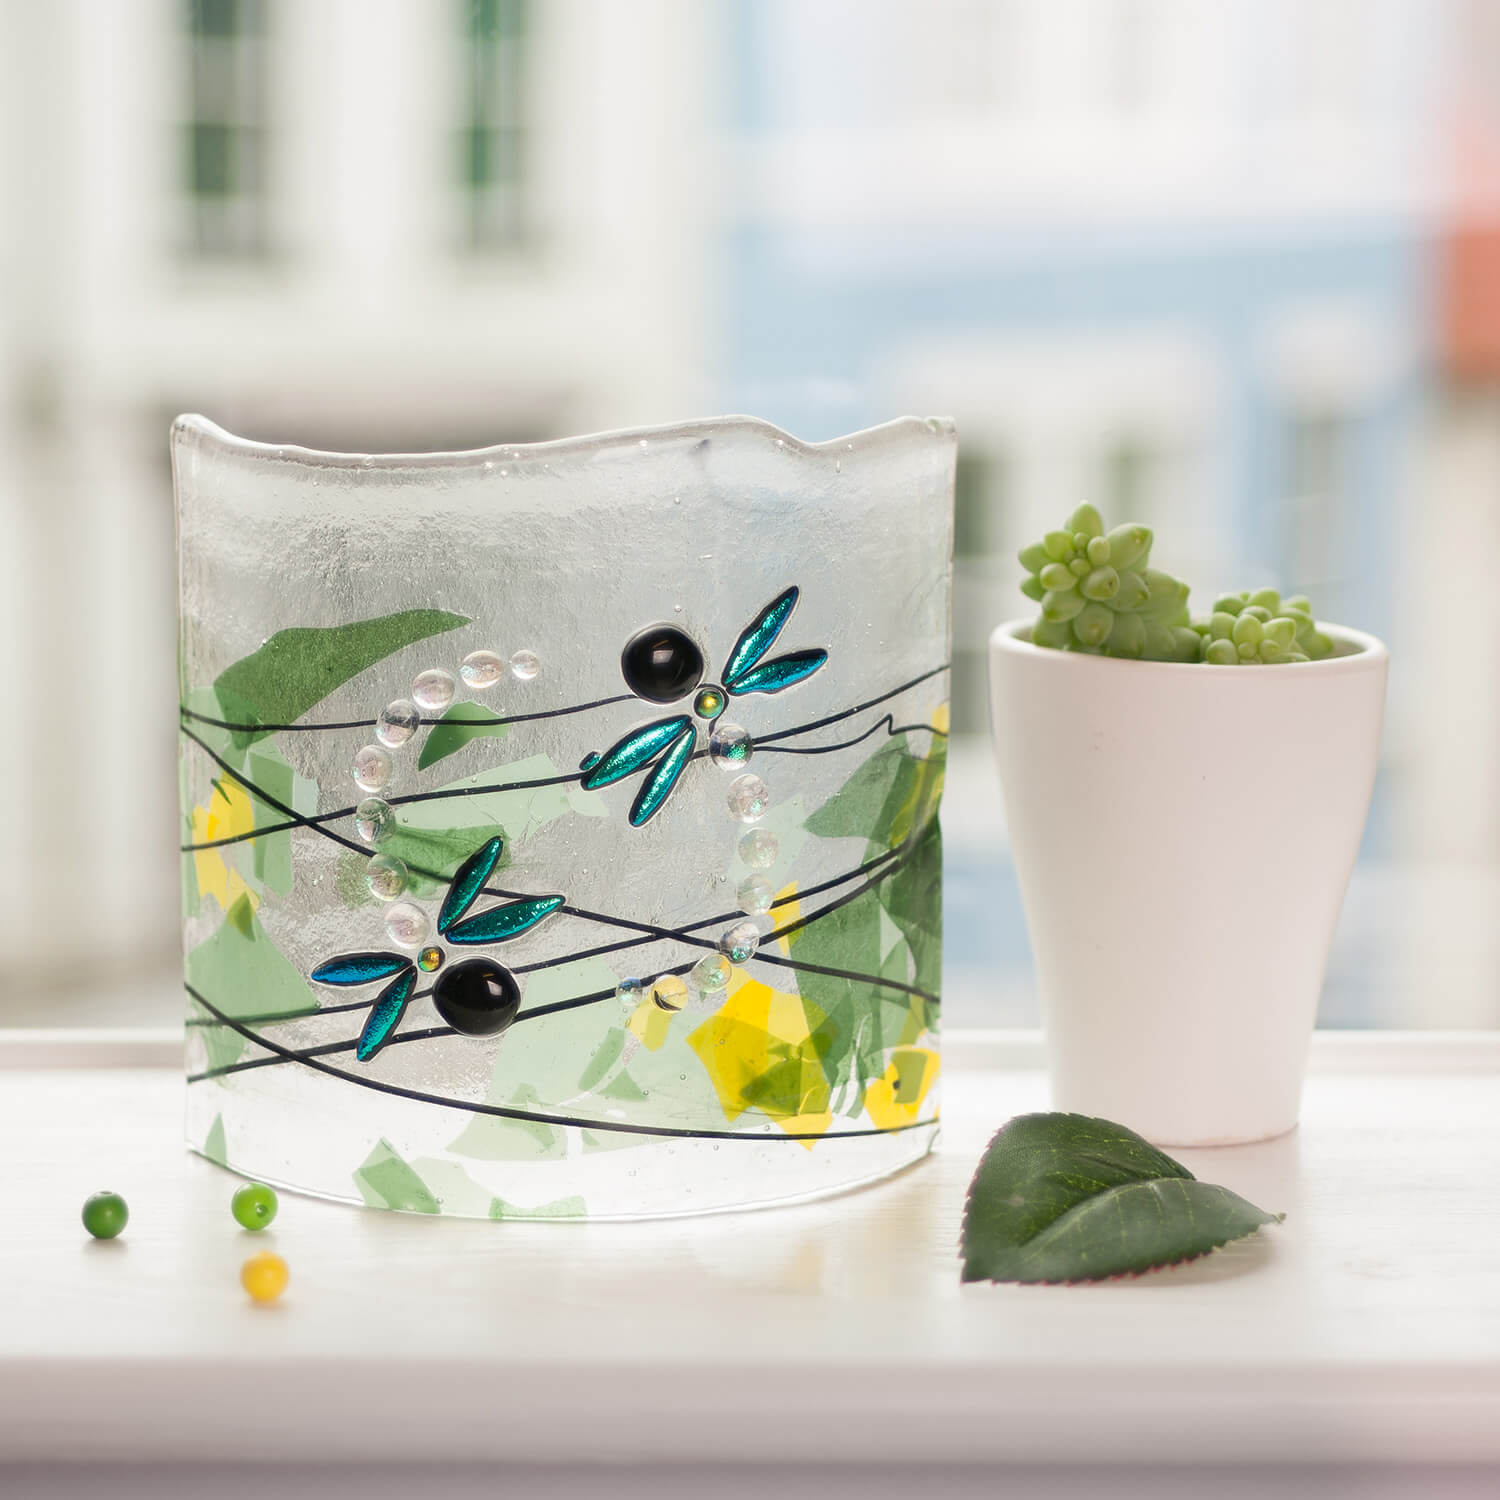 Handmade glassware by Dragonfly Dichroic